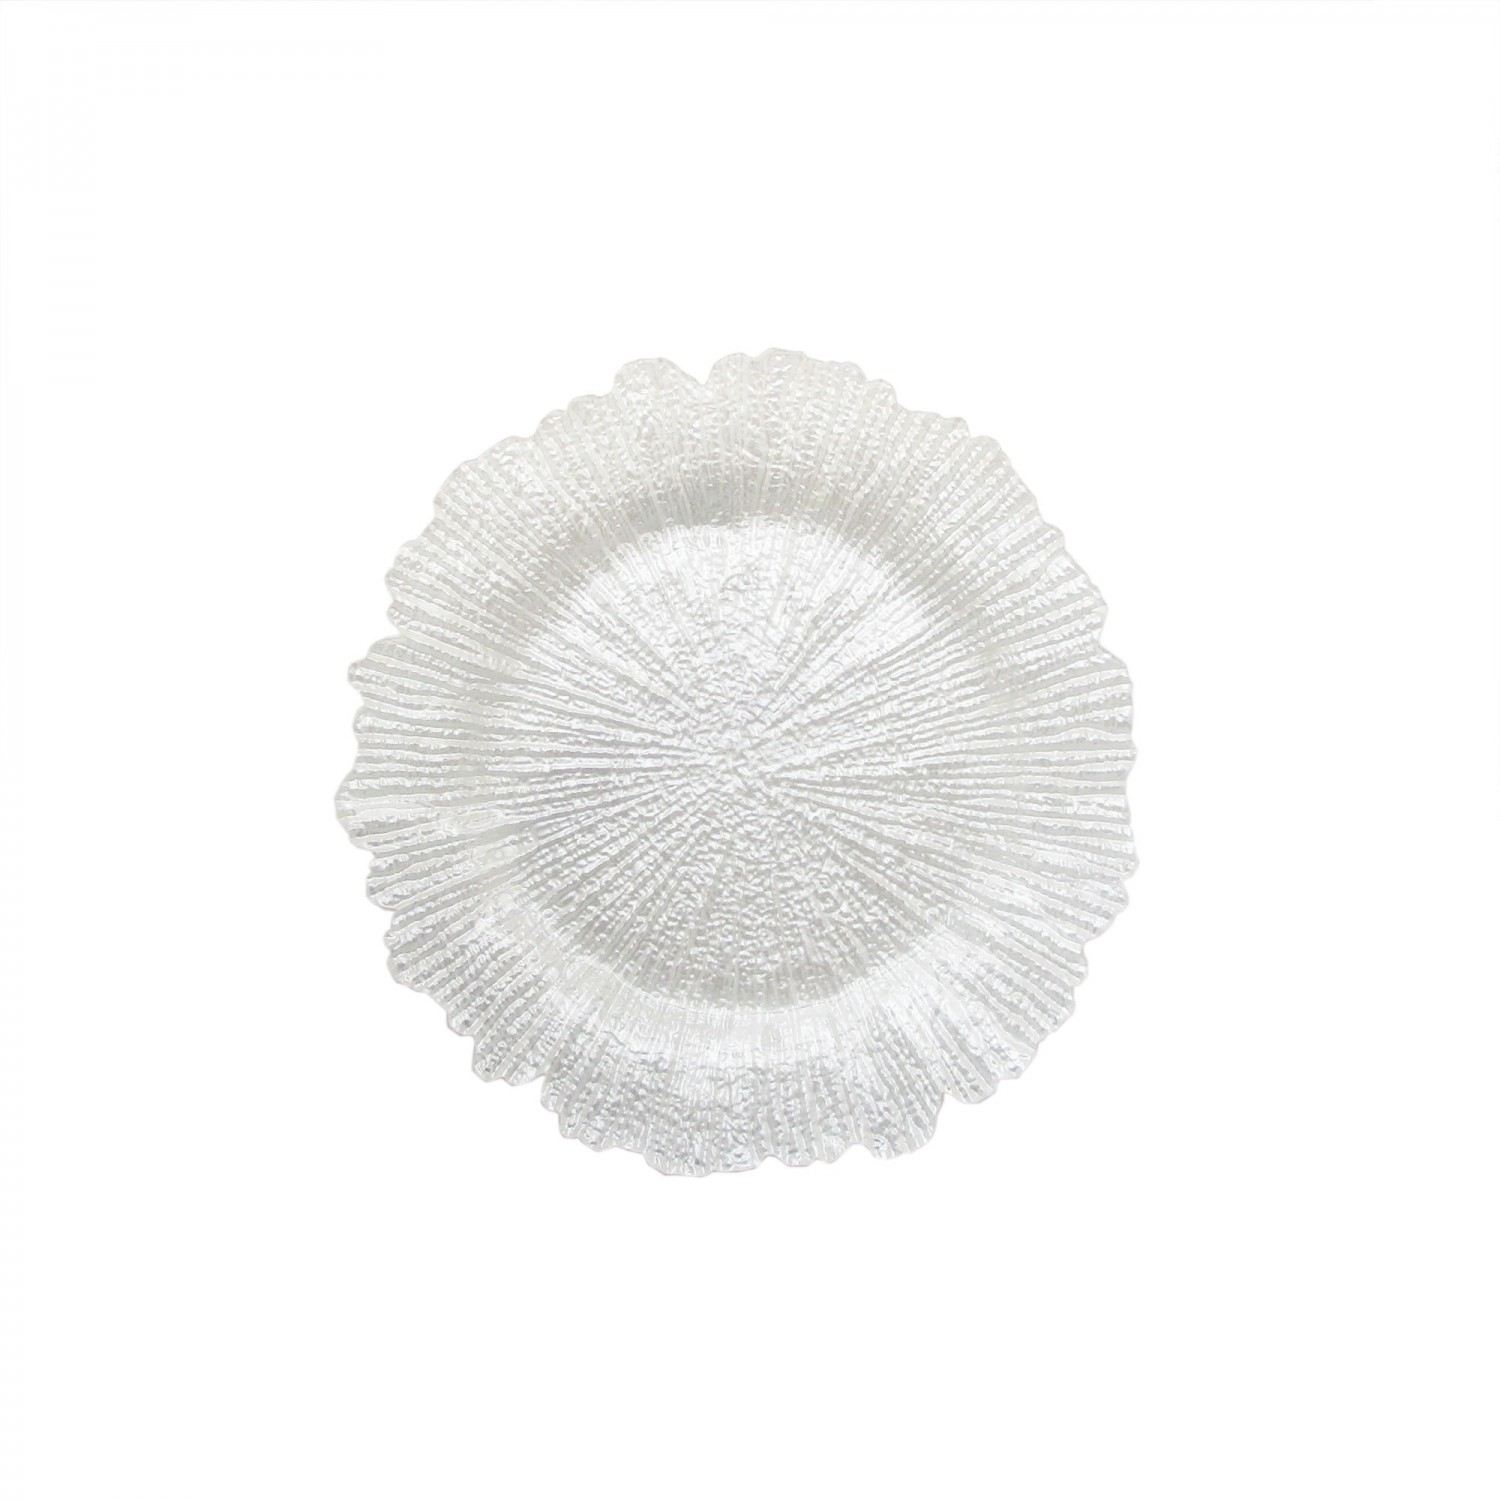 The Jay Companies 1470110-WH Reef White Glass Charger Plate 13""